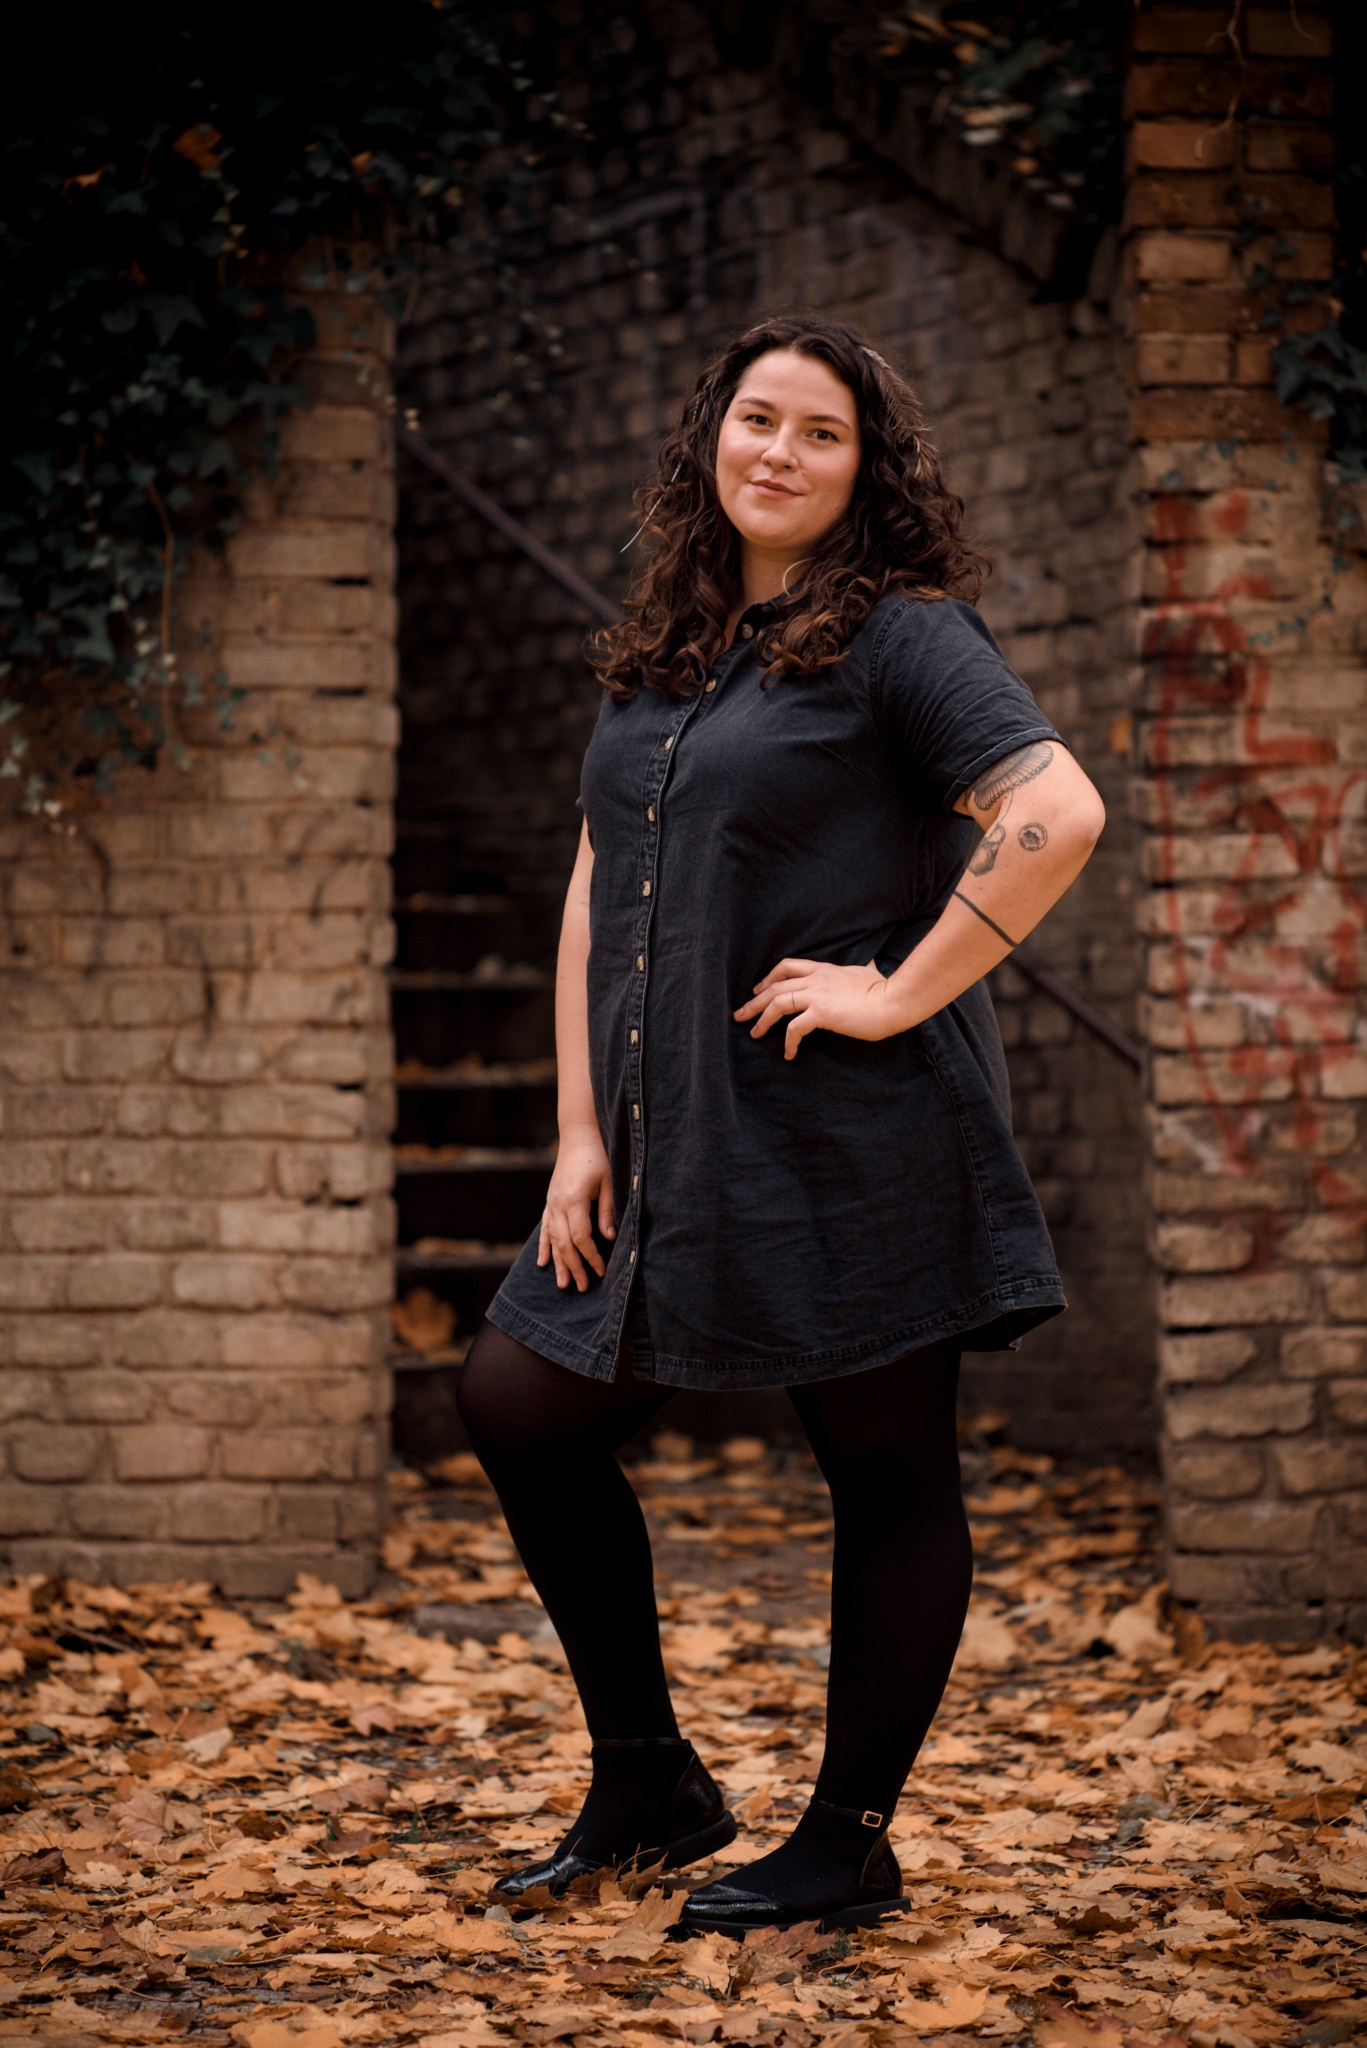 Plus-size portrait photography (and more)